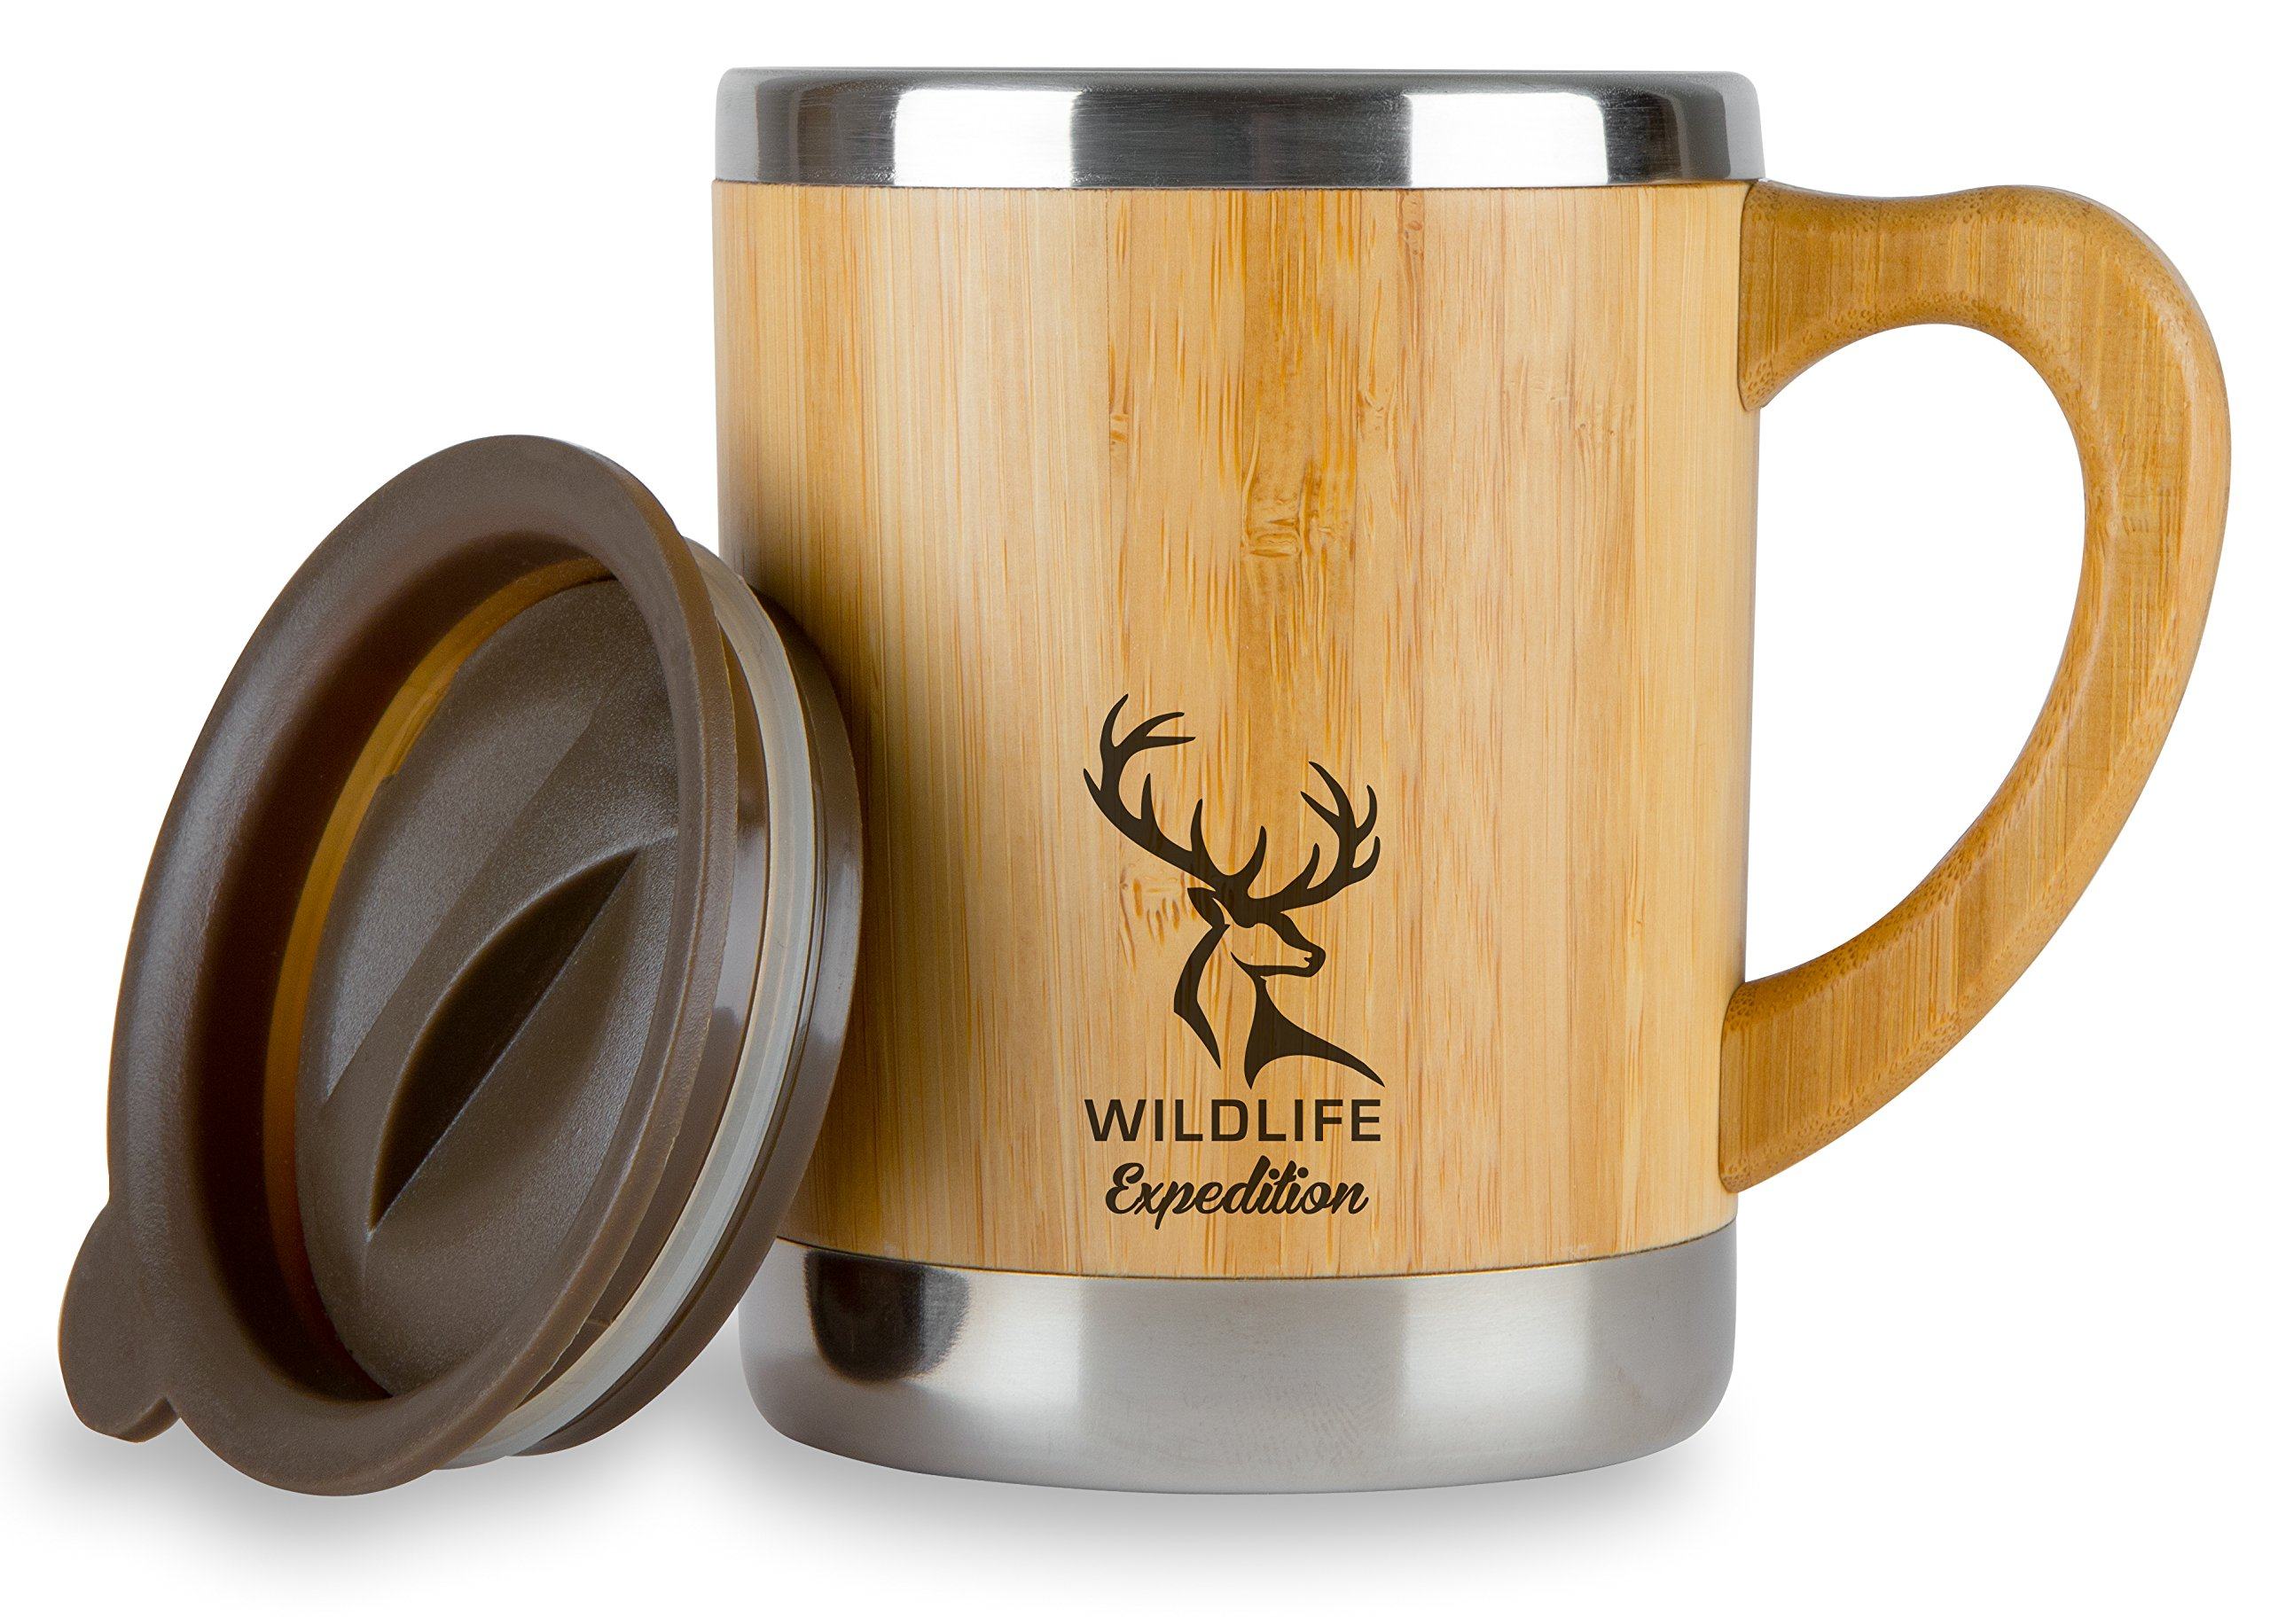 Wildlife Expedition Insulated 11oz Coffee Mug - Stainless Steel & Bamboo Cup with Handle & Lid - Non-Spill On the Go - Keep Your Tea Hot Longer - Unique Gift for Men & Women by Wildlife Expedition (Image #1)